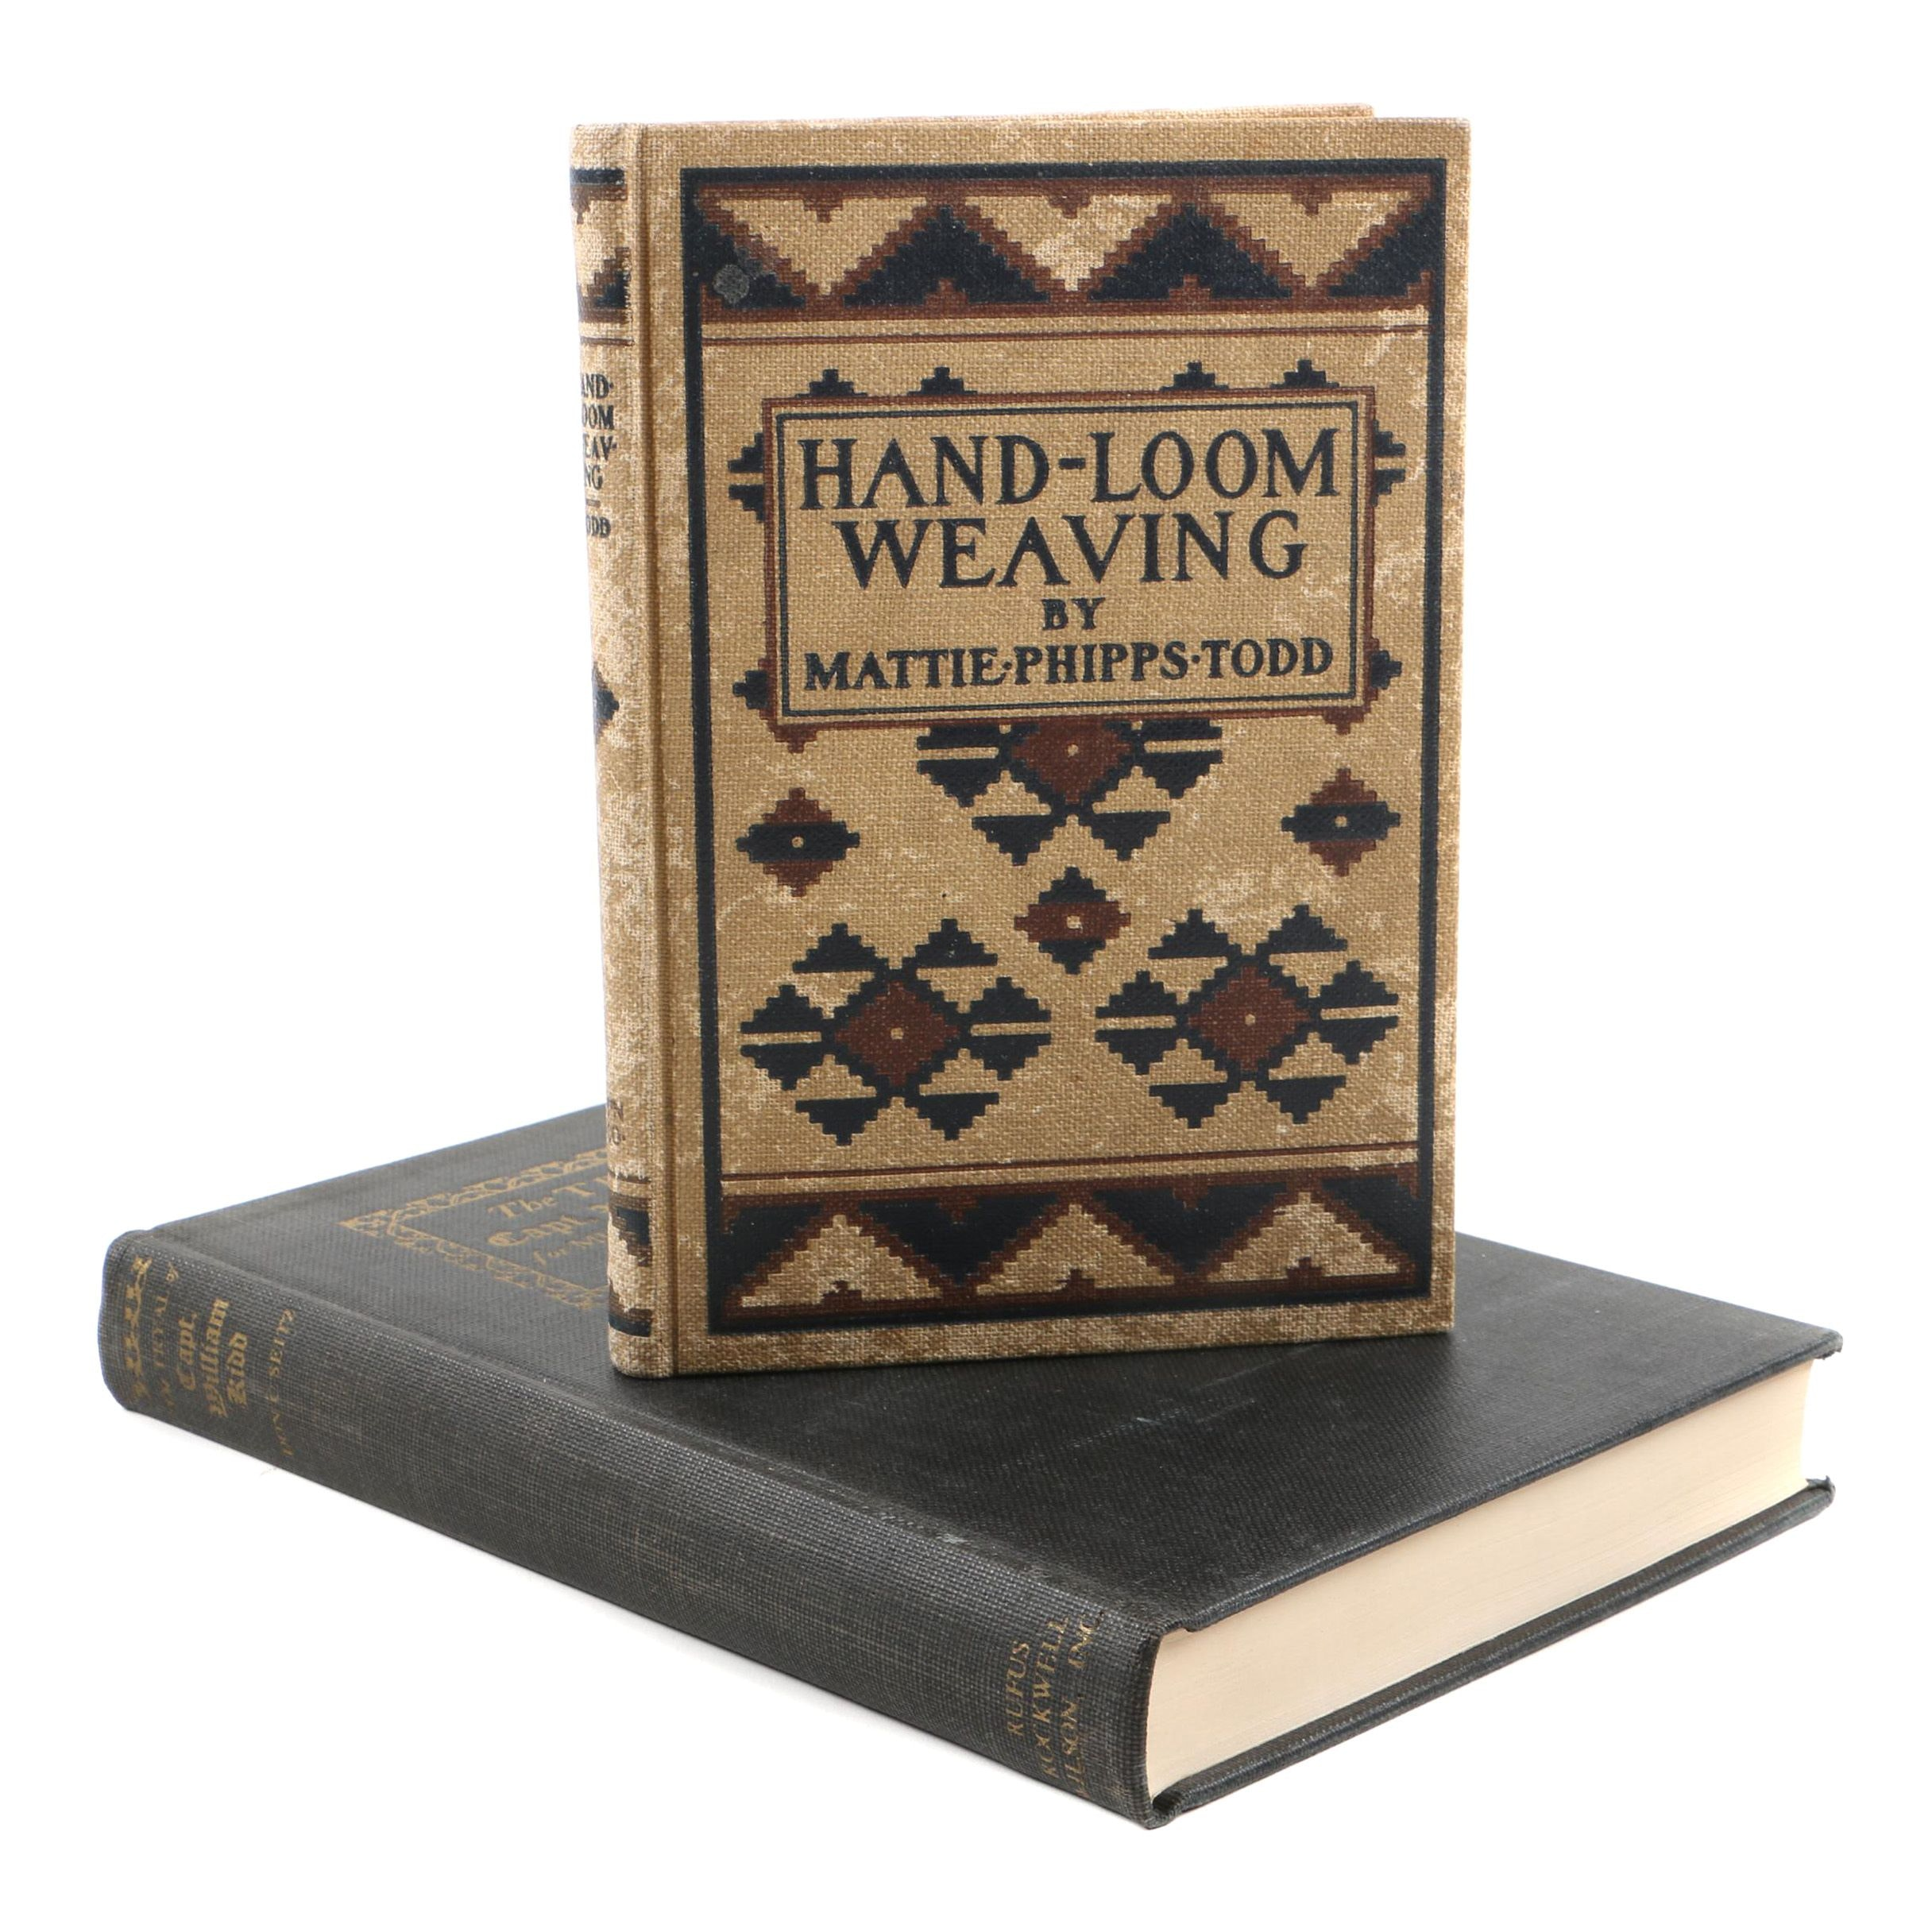 Early 20th Century Books on Weaving and Chinese Art